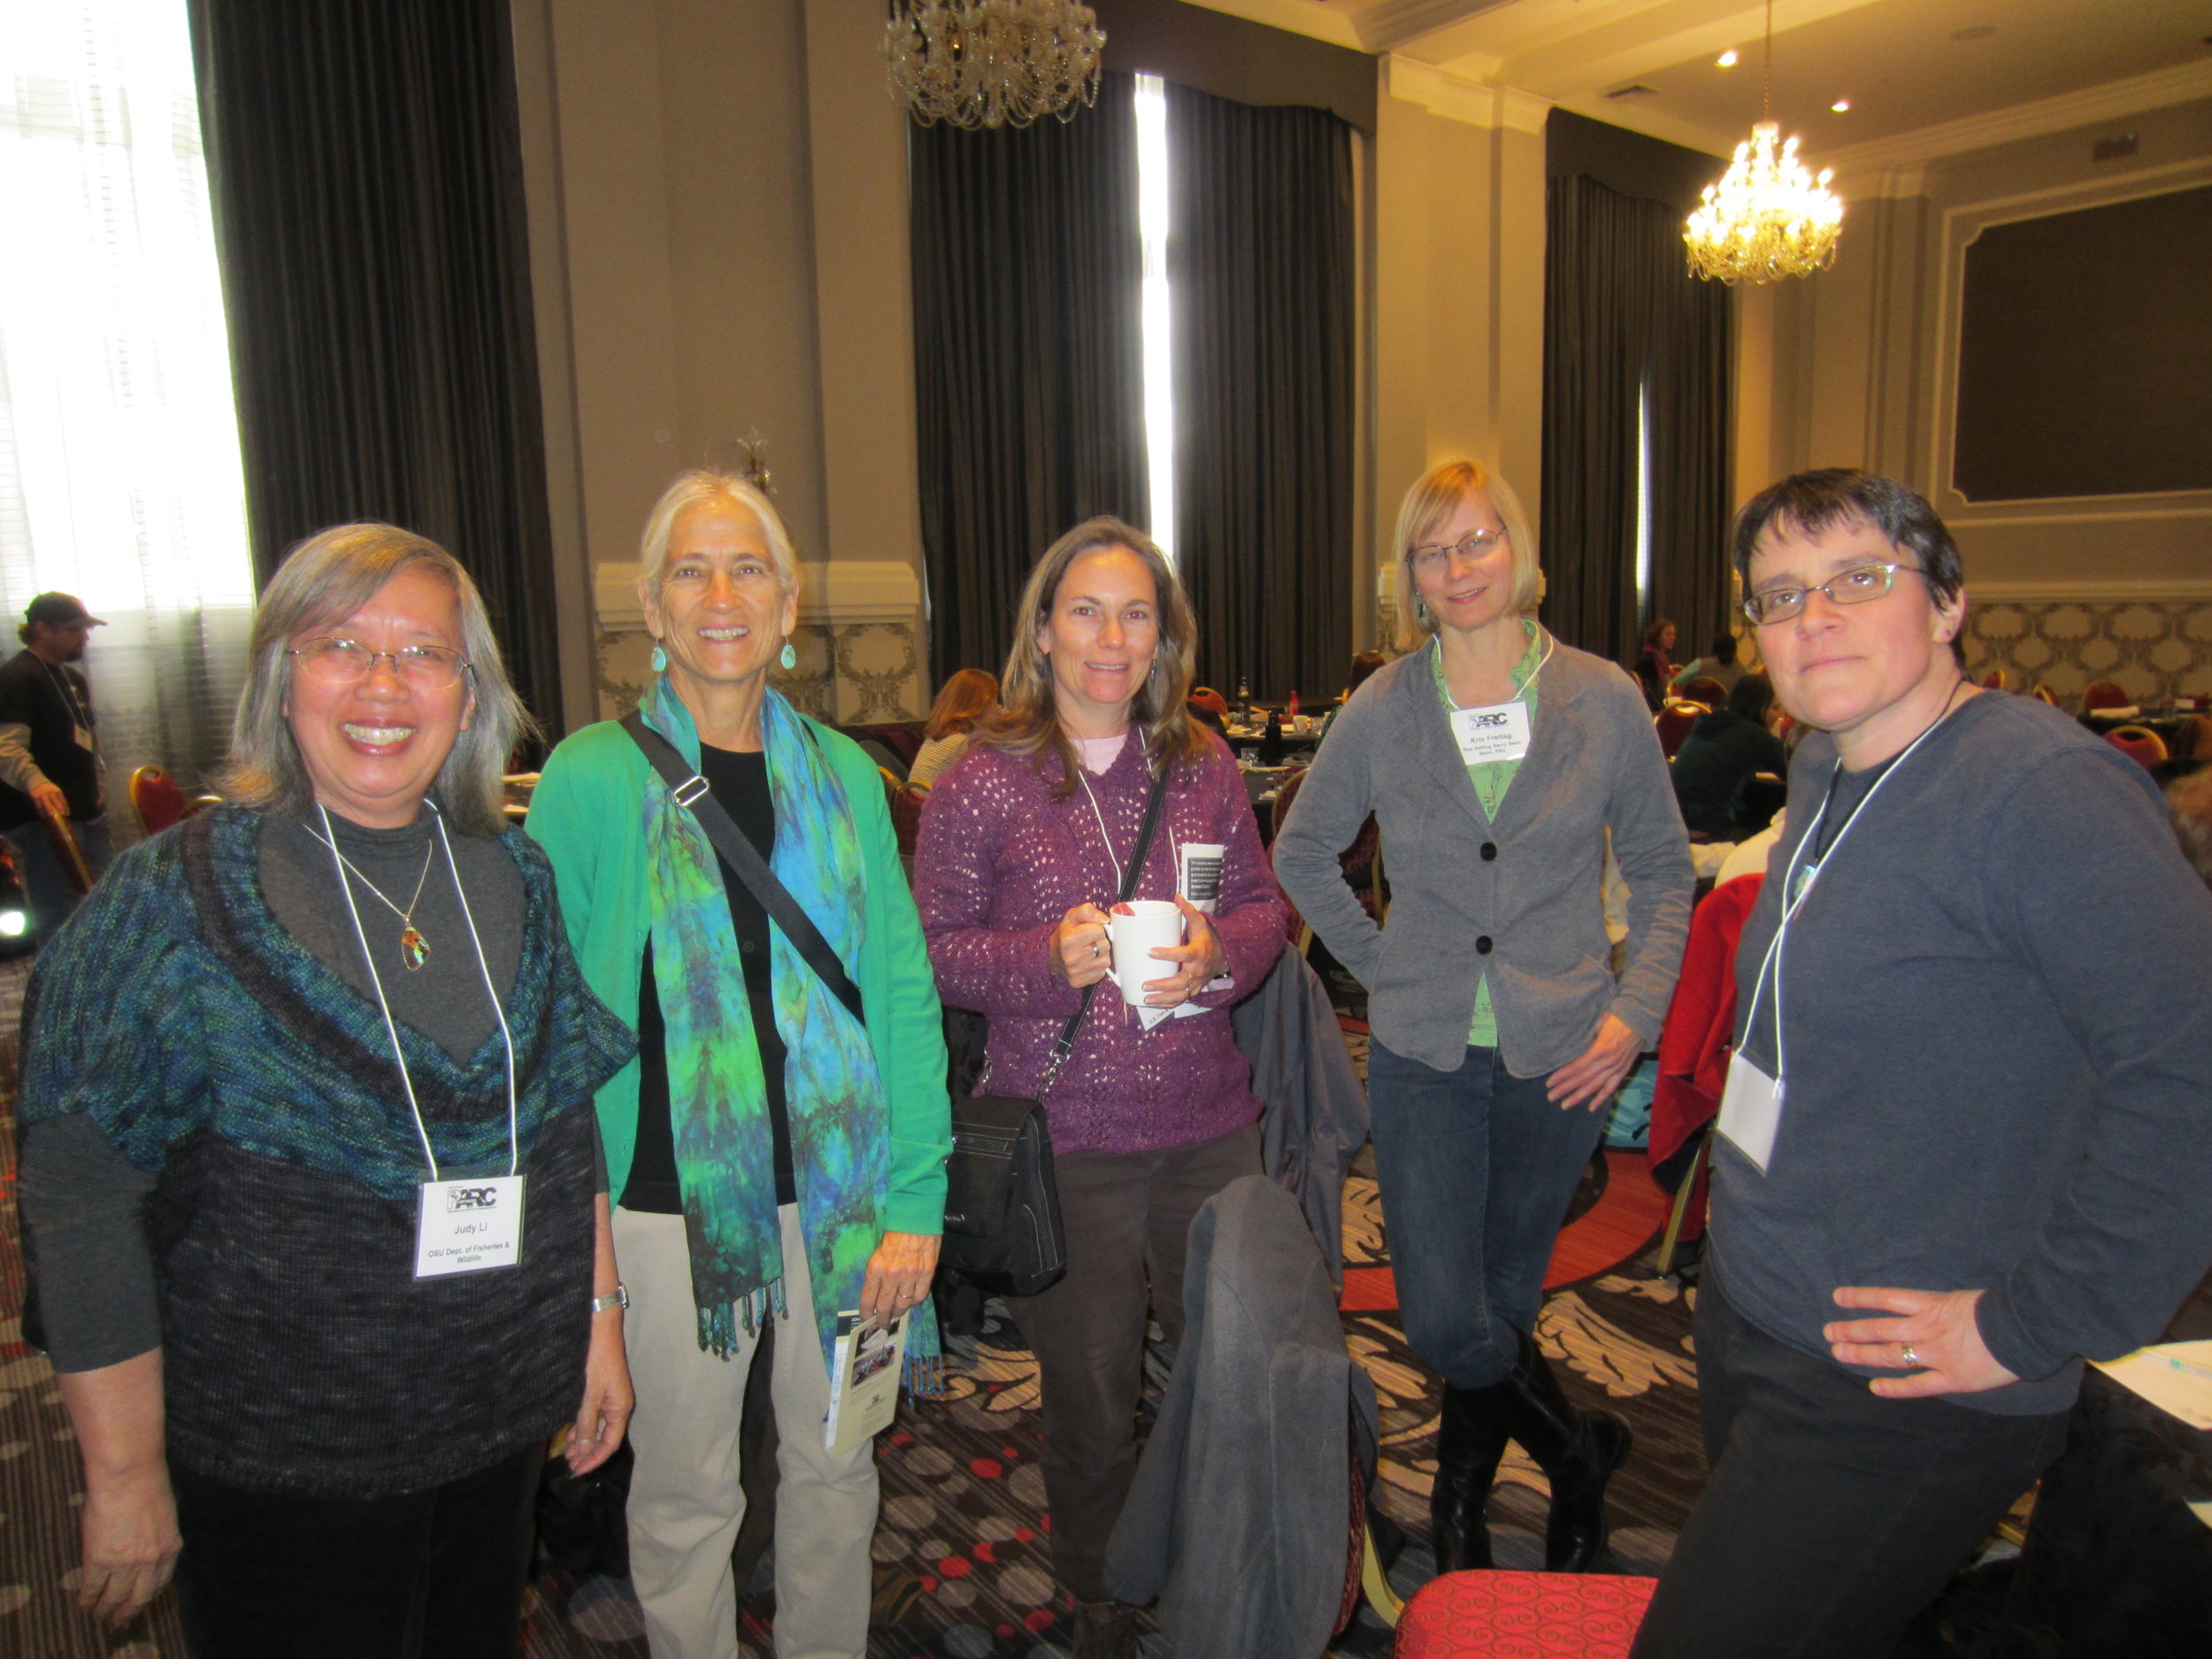 Sharman Apt Russell (second from left) and Celeste Searles Mazzacano (far right) with meeting participants.